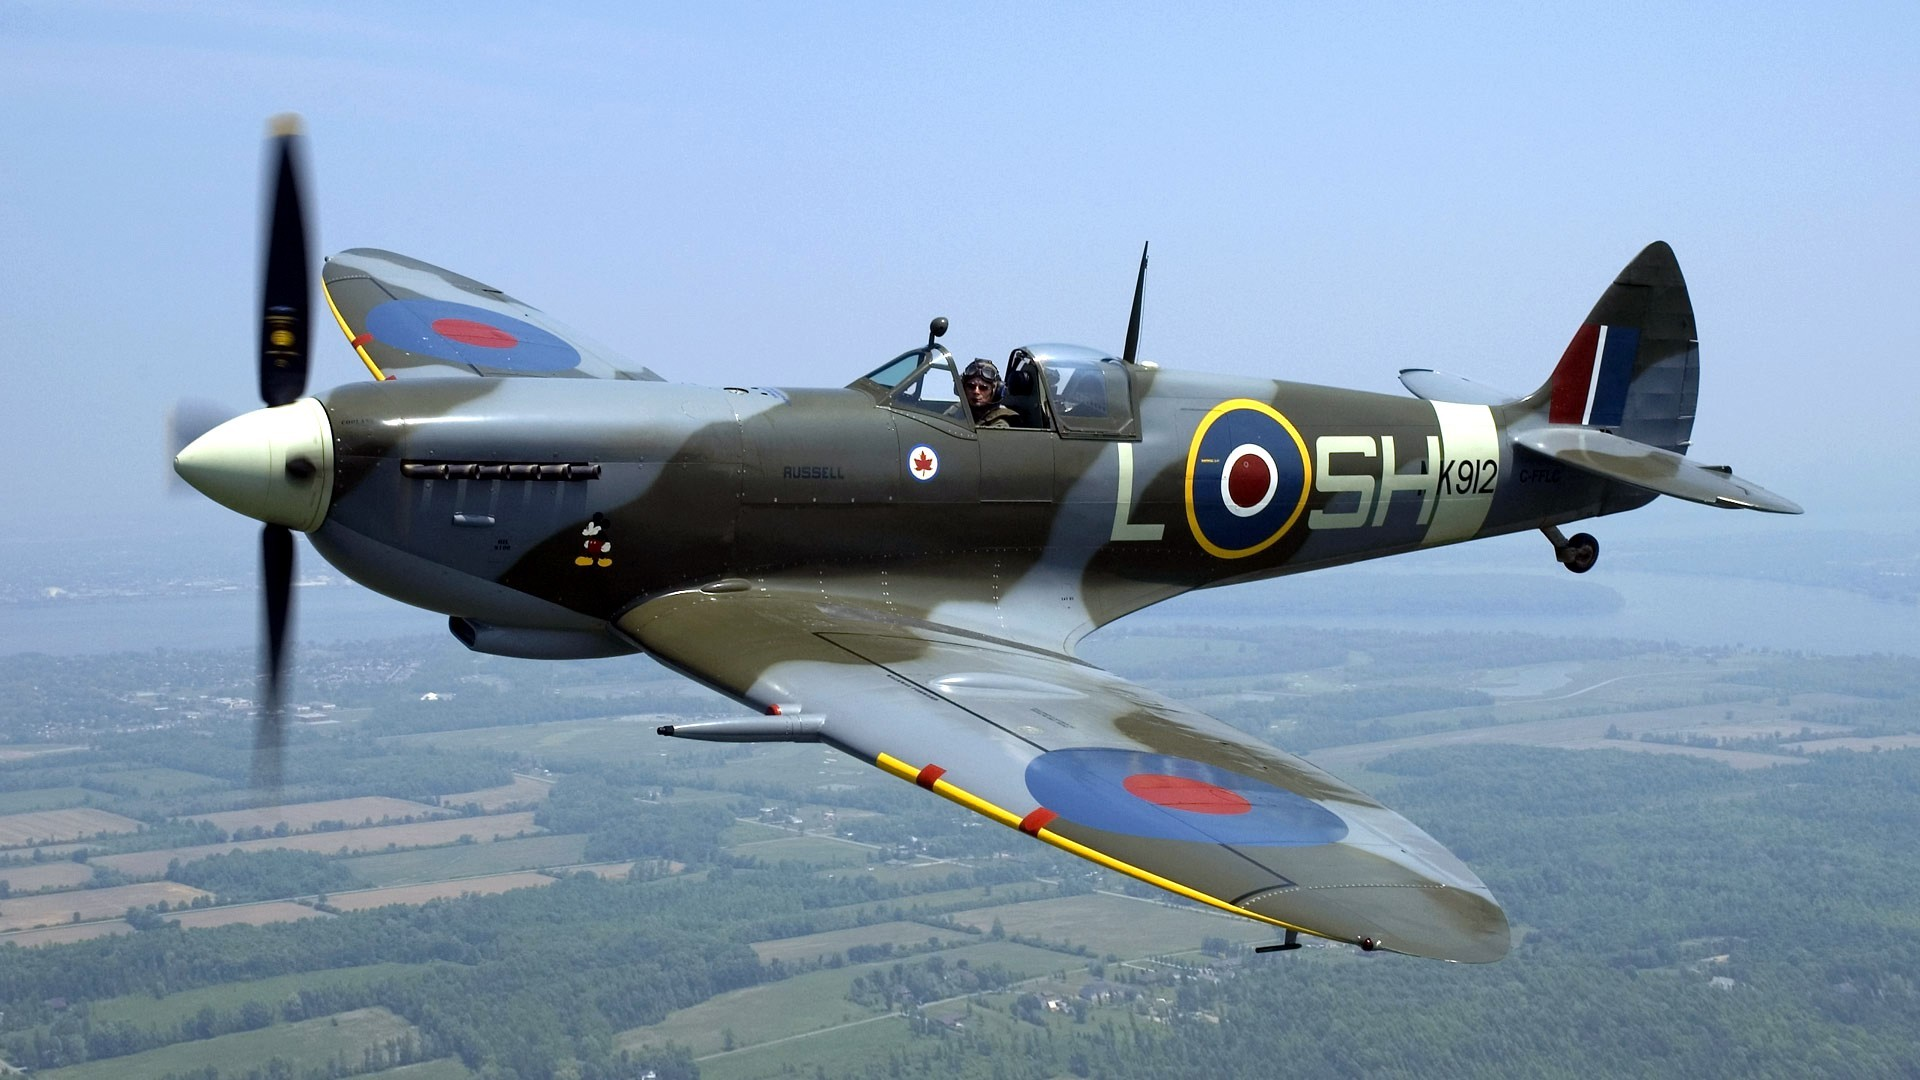 Supermarine Spitfire Wallpaper Hd Desktop 10 HD Wallpapers